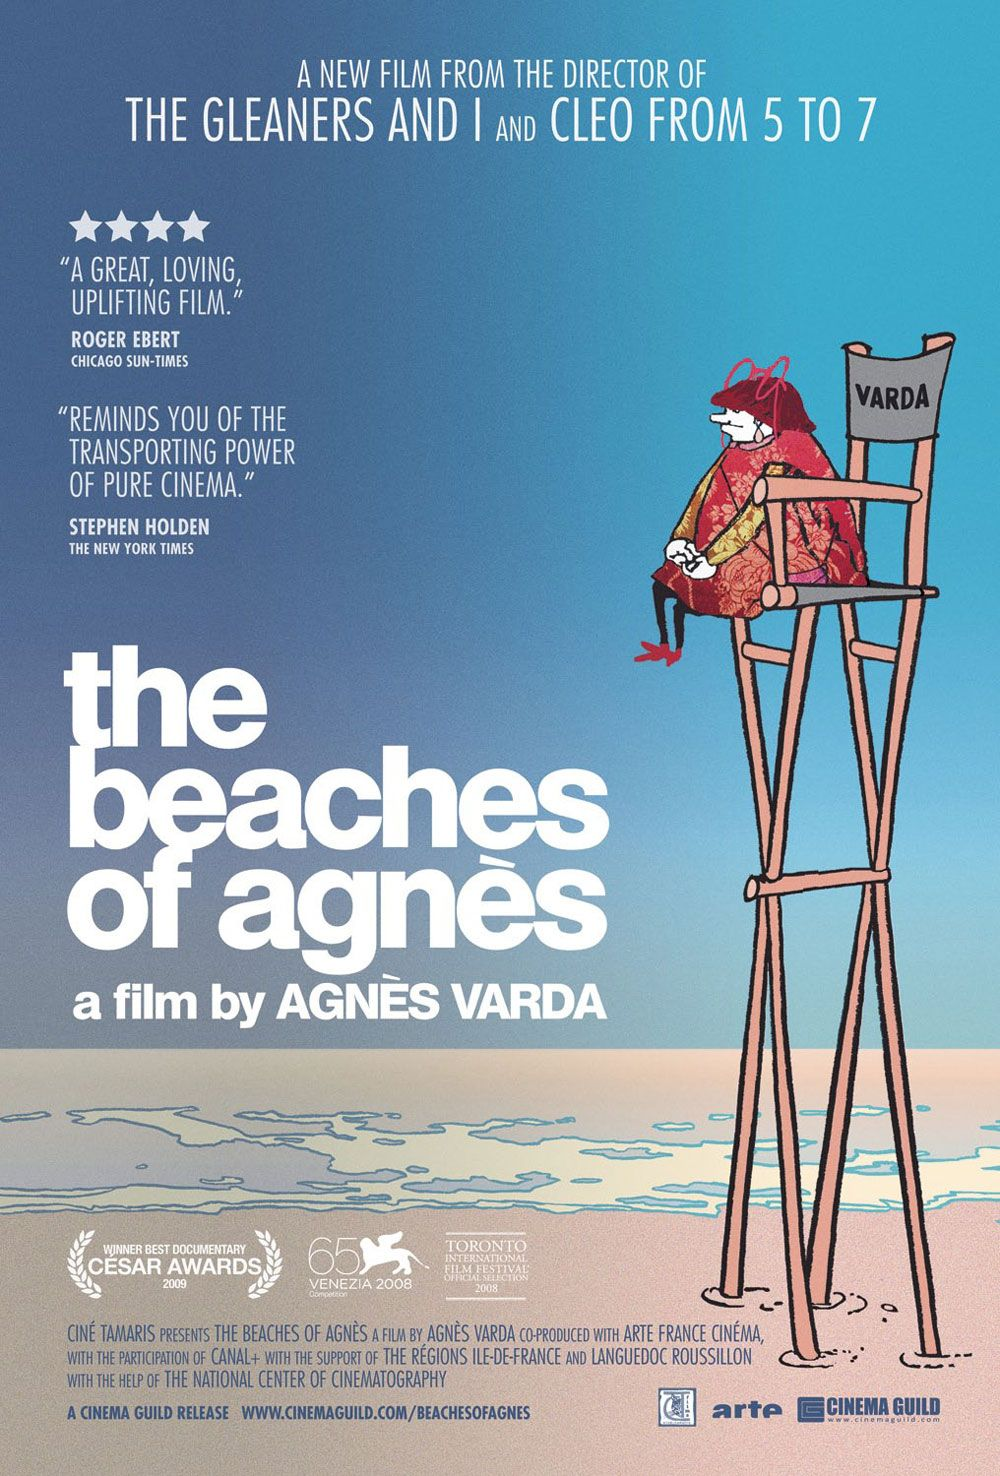 THE BEACHES OF AGNES -- A film by Agnes Varda